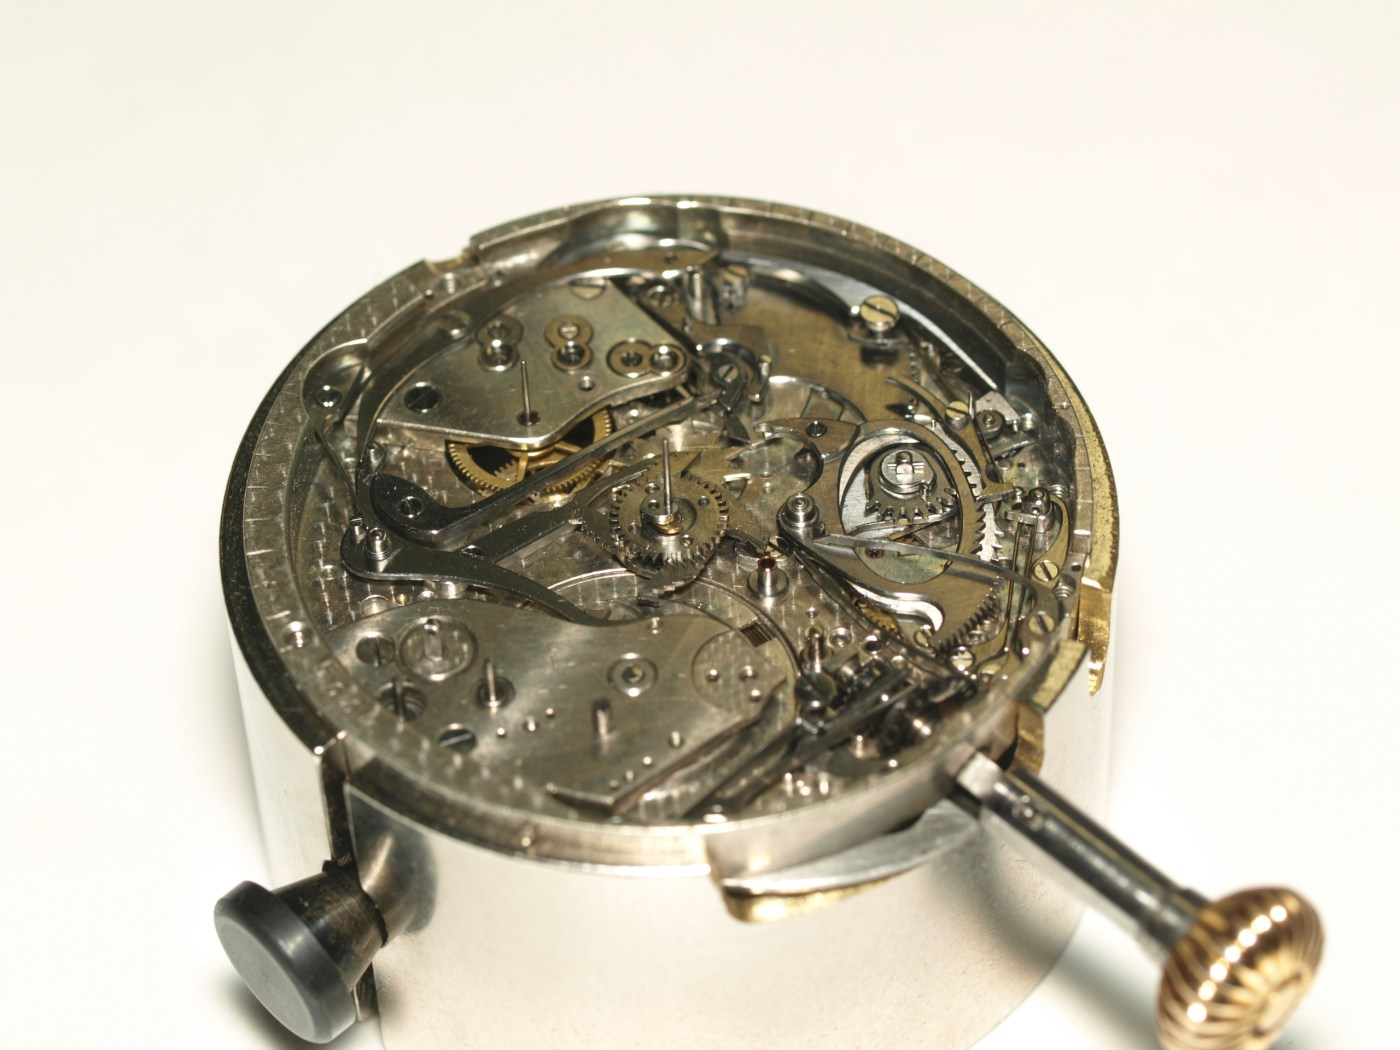 AP Grand Complication in for service